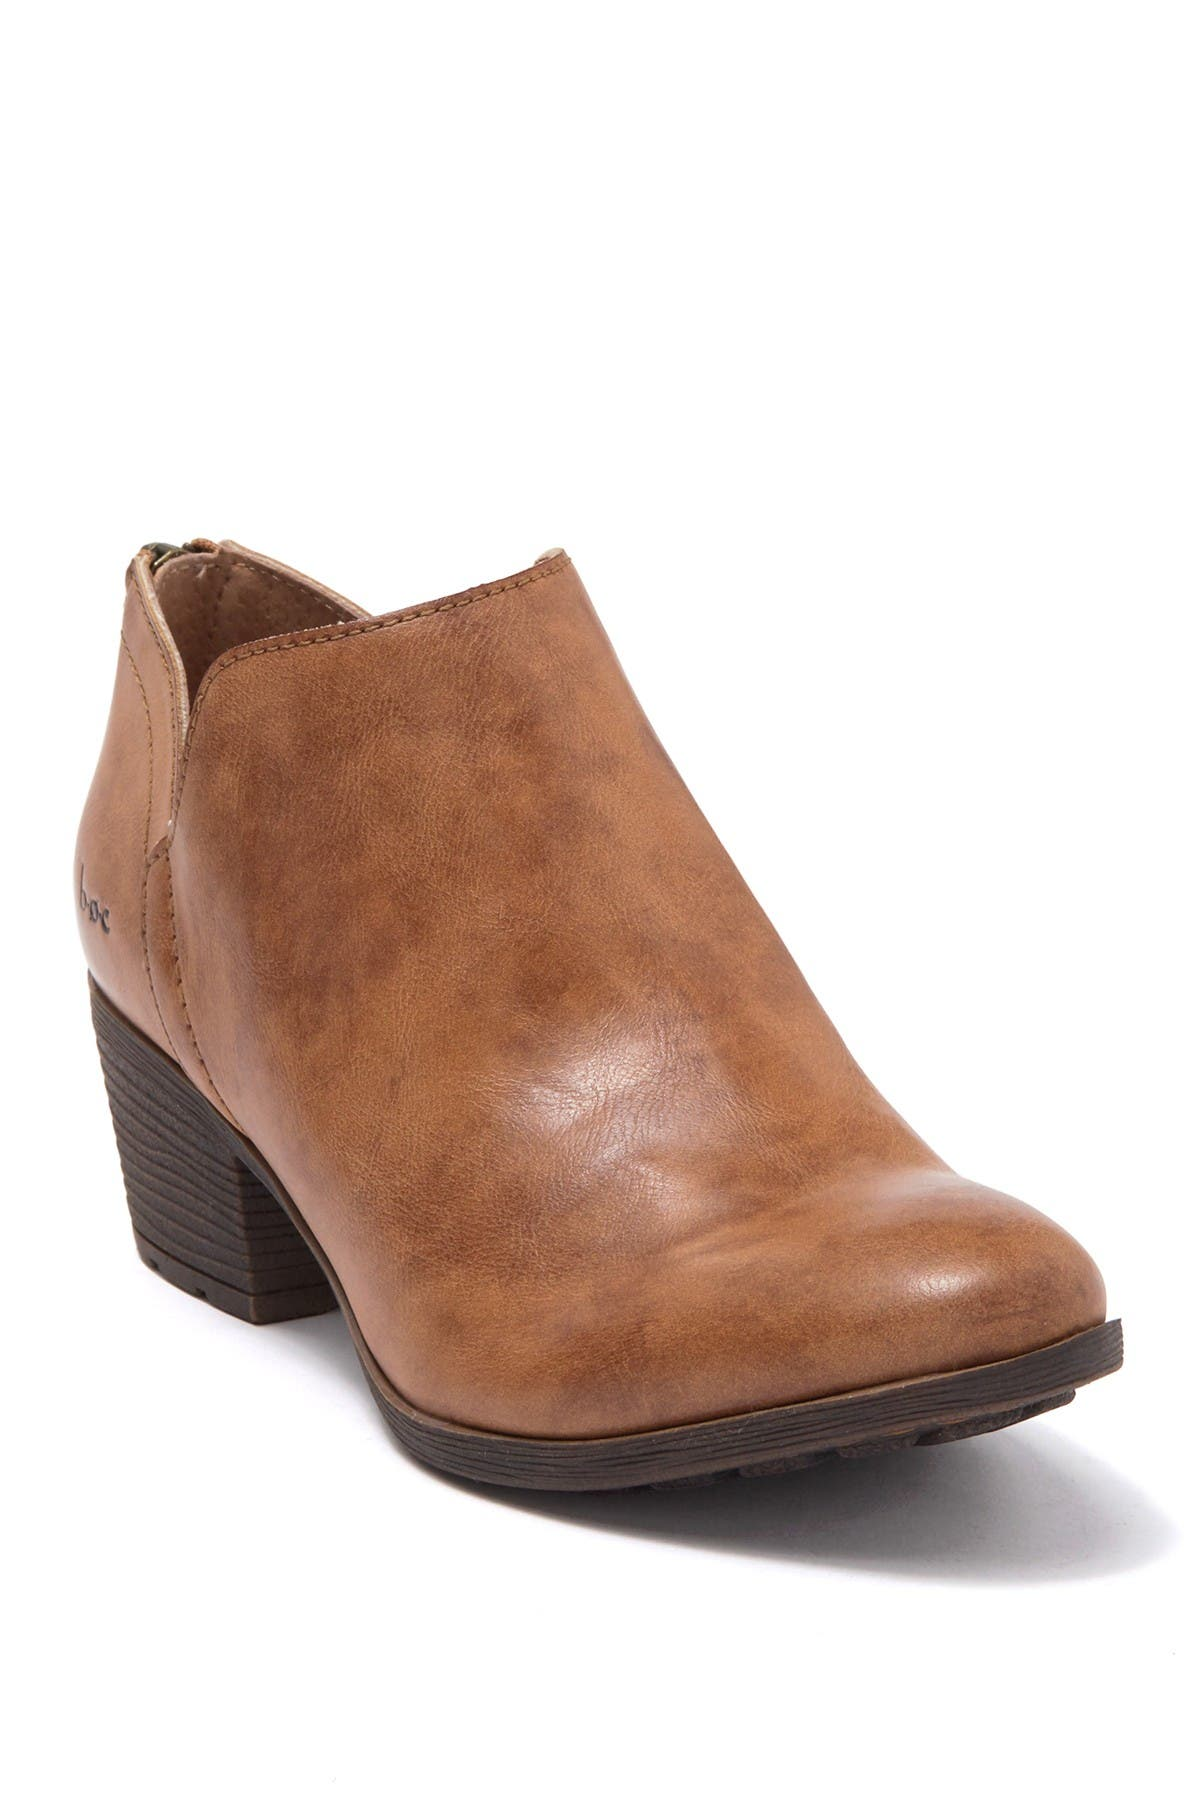 Image of B.O.C. BY BORN Celosia Ankle Bootie